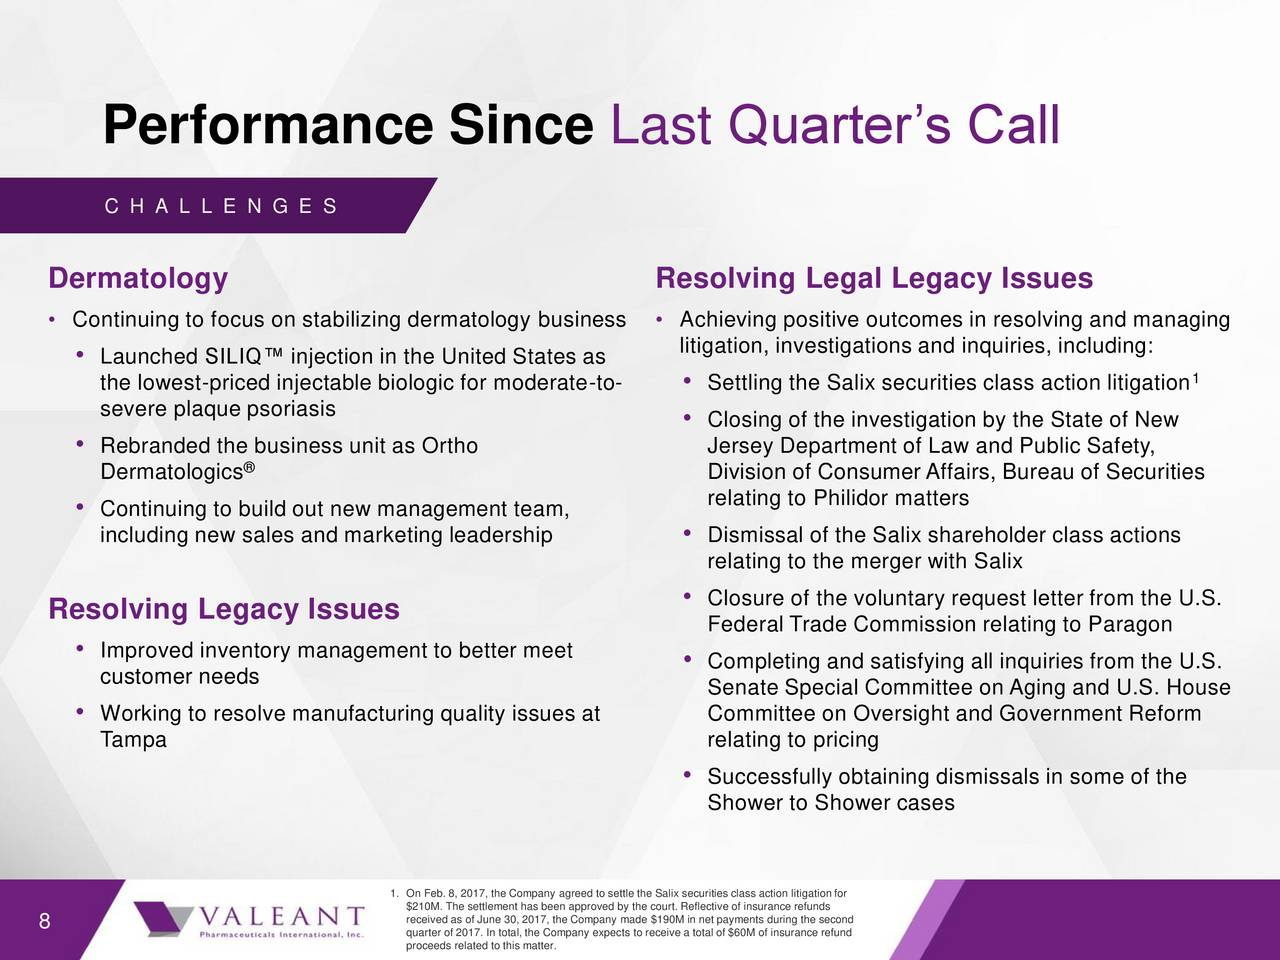 valeant pharmaceuticals international inc 2017 q2 results earnings call slides valeant. Black Bedroom Furniture Sets. Home Design Ideas